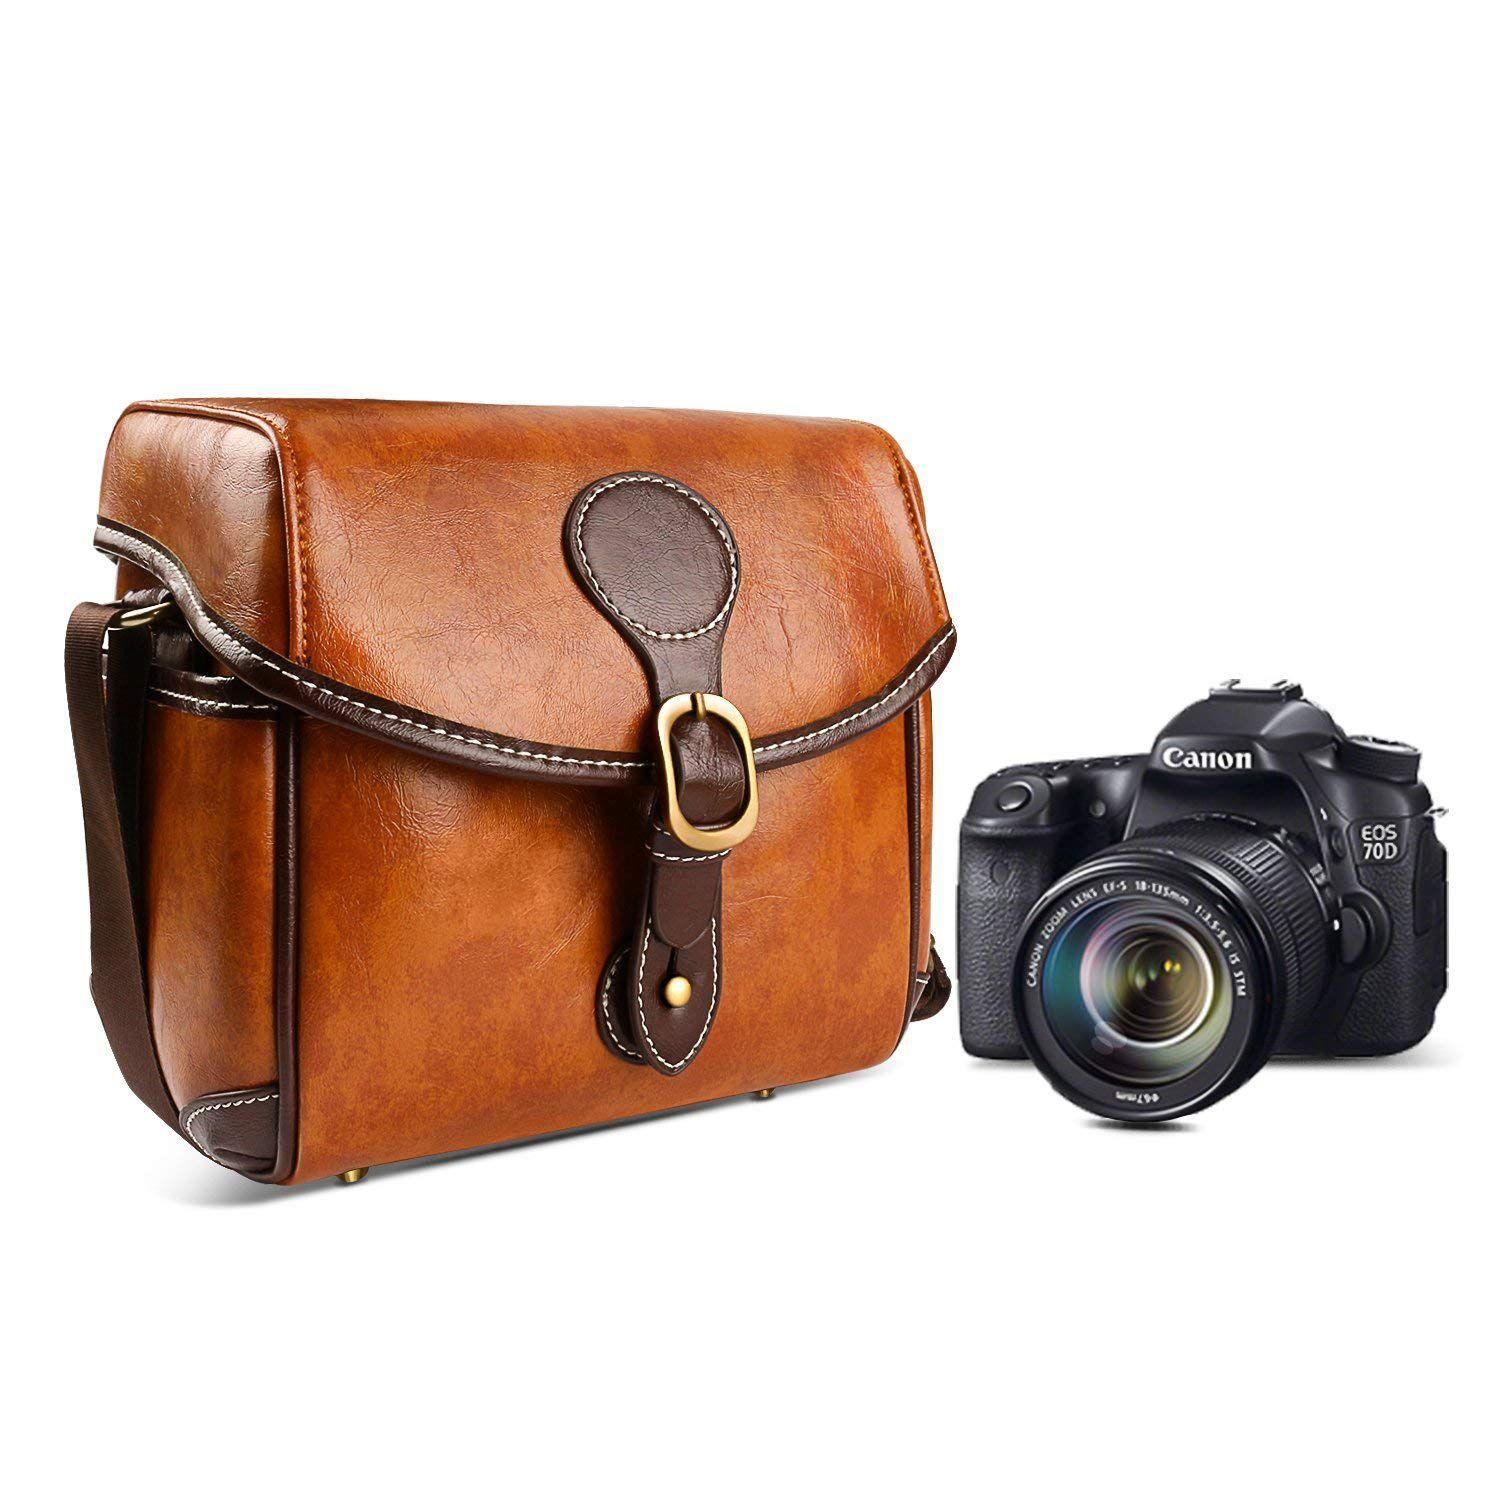 b5257c0806f Camera Bag for sale - Camera Case prices